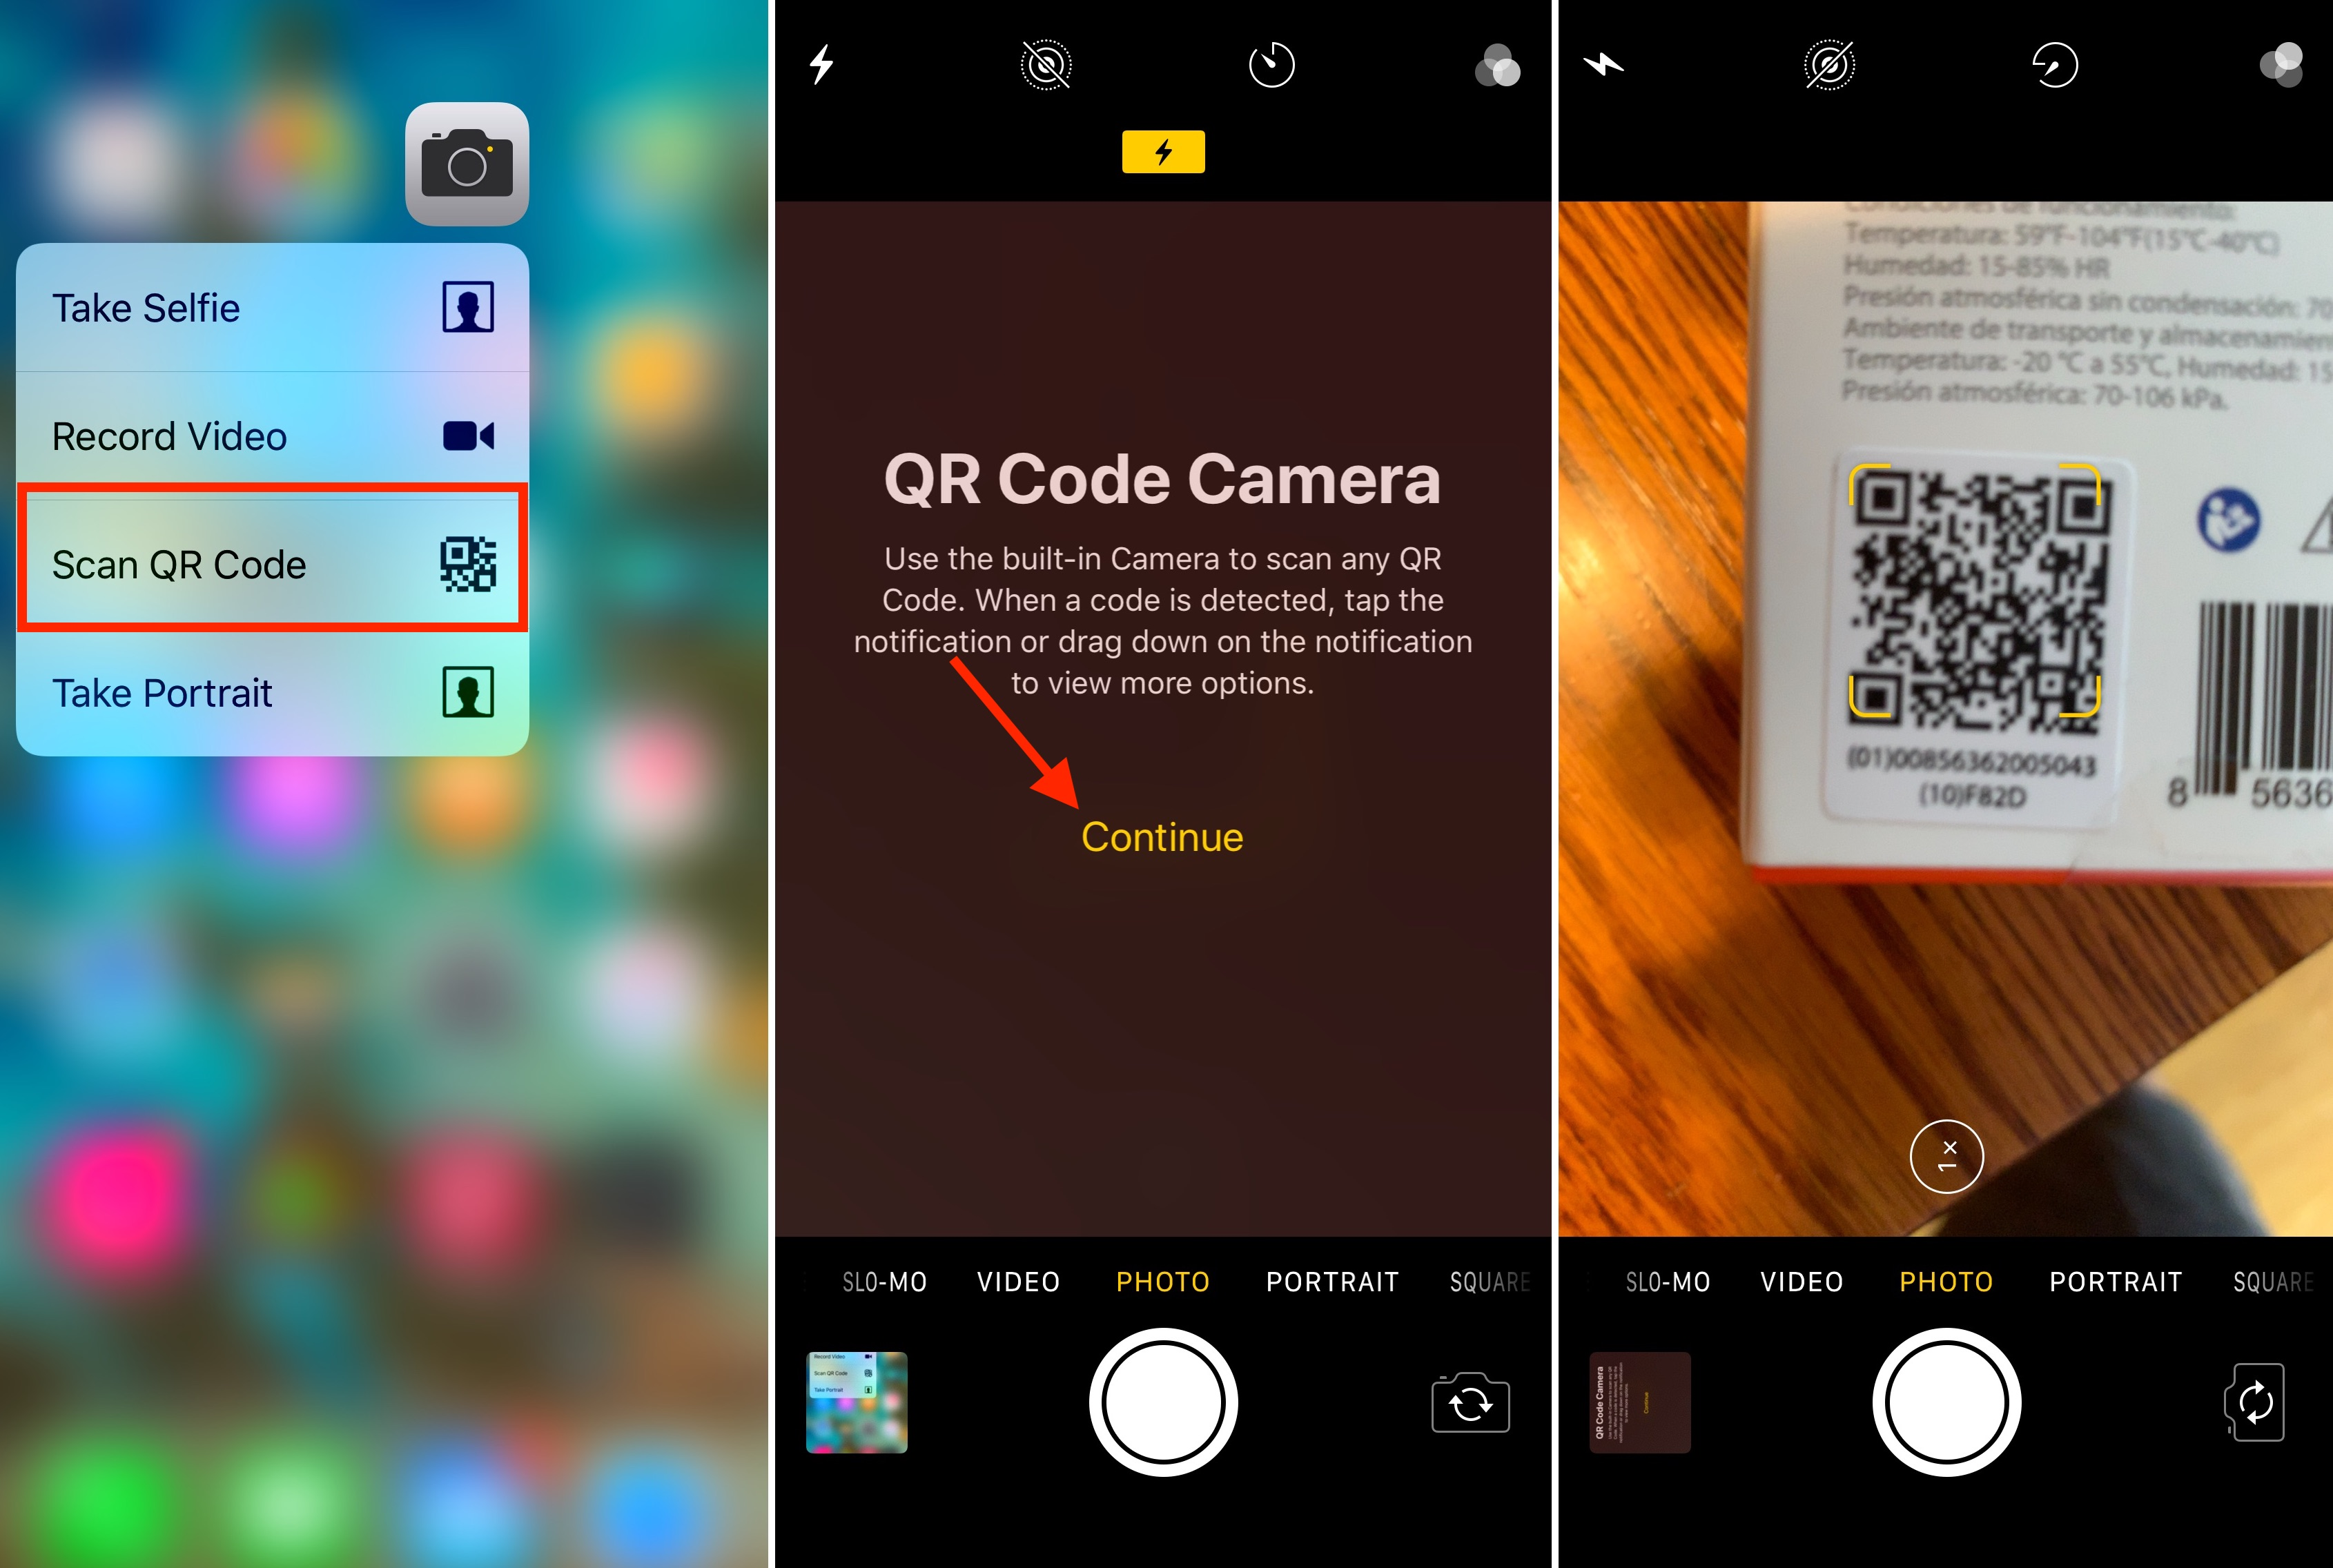 How To Scan QR Codes And Documents From The Home Screen